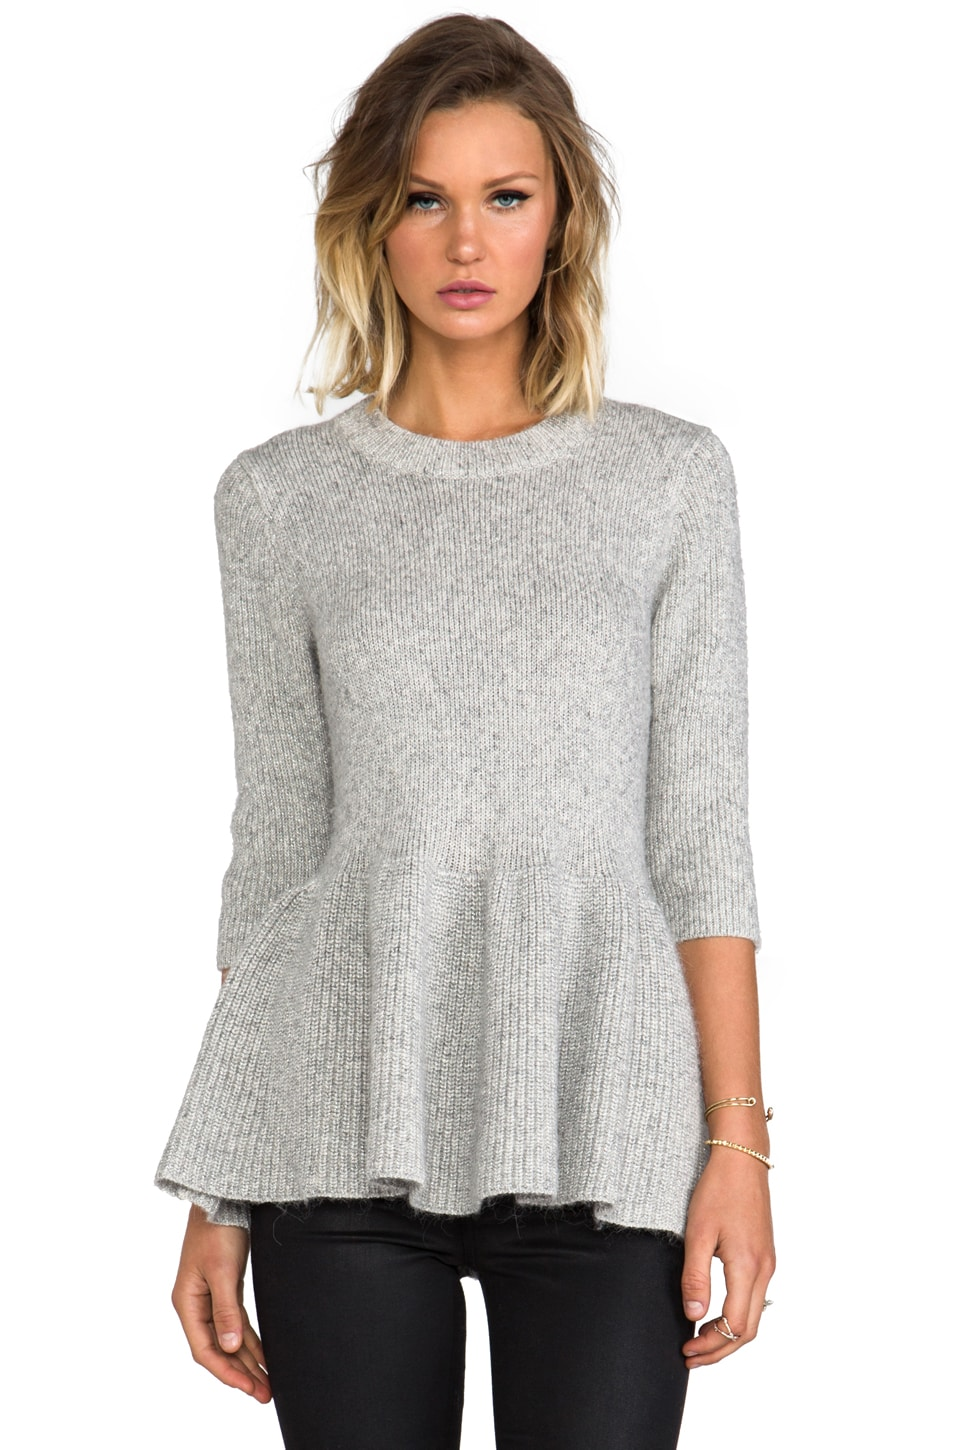 DEREK LAM 10 CROSBY Metallic Peplum Sweater in Grey